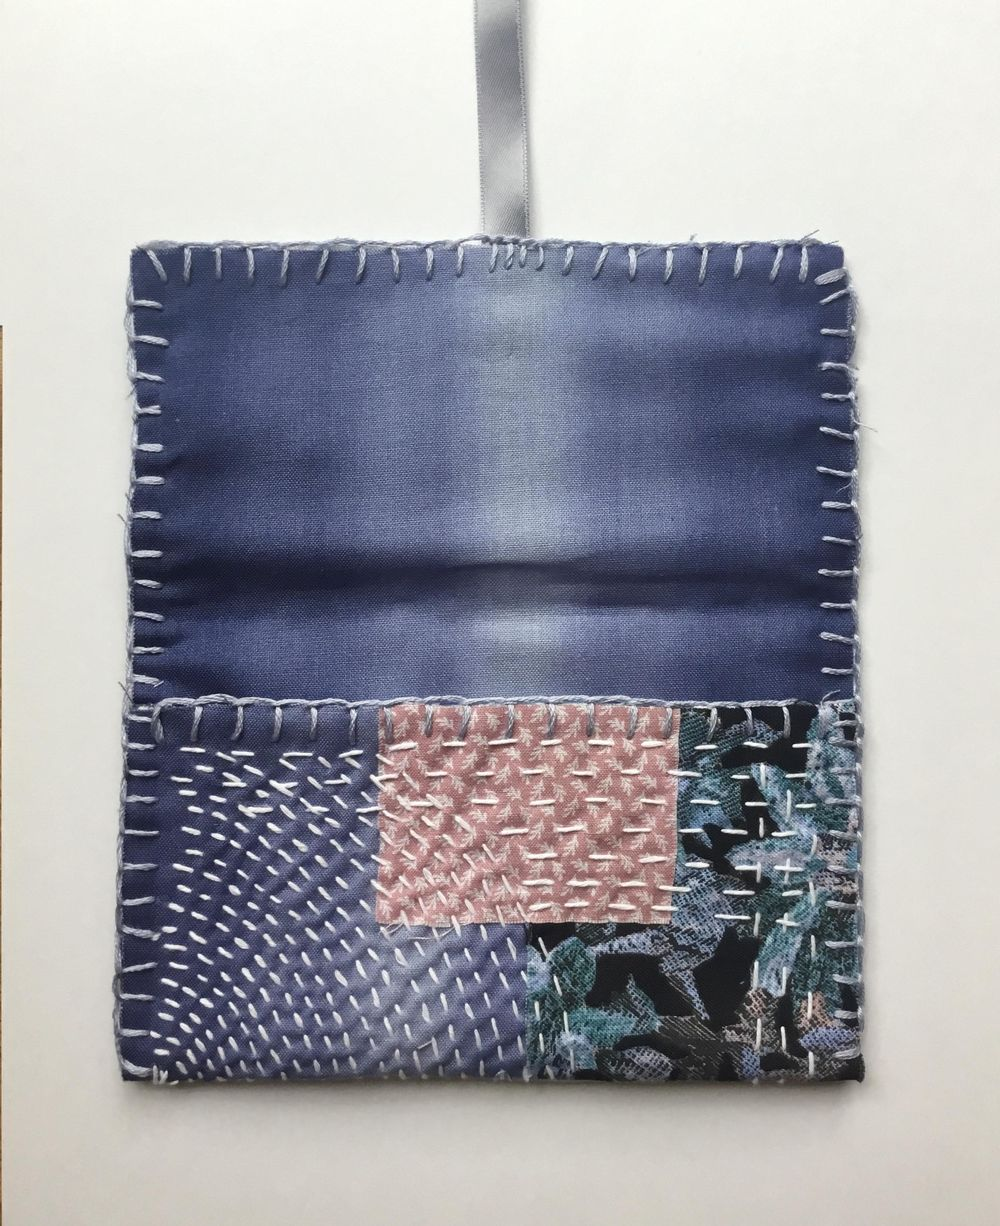 My First Boro Stitching Project - image 4 - student project